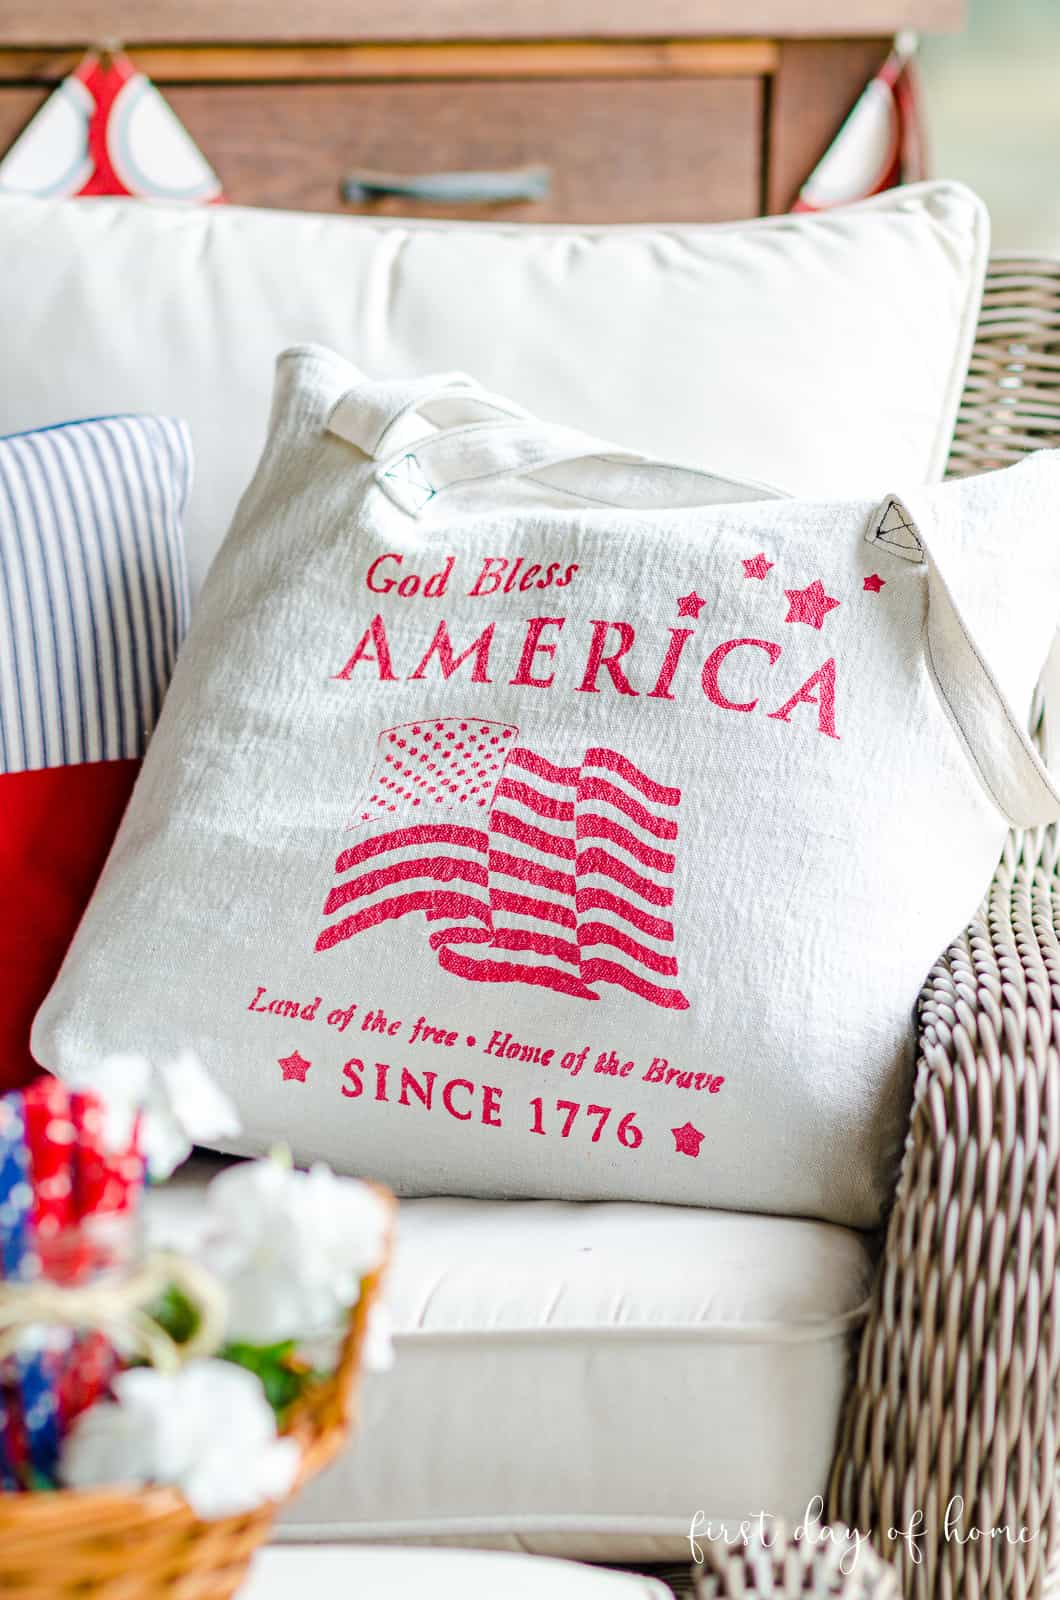 Patriotic tote bag on chair